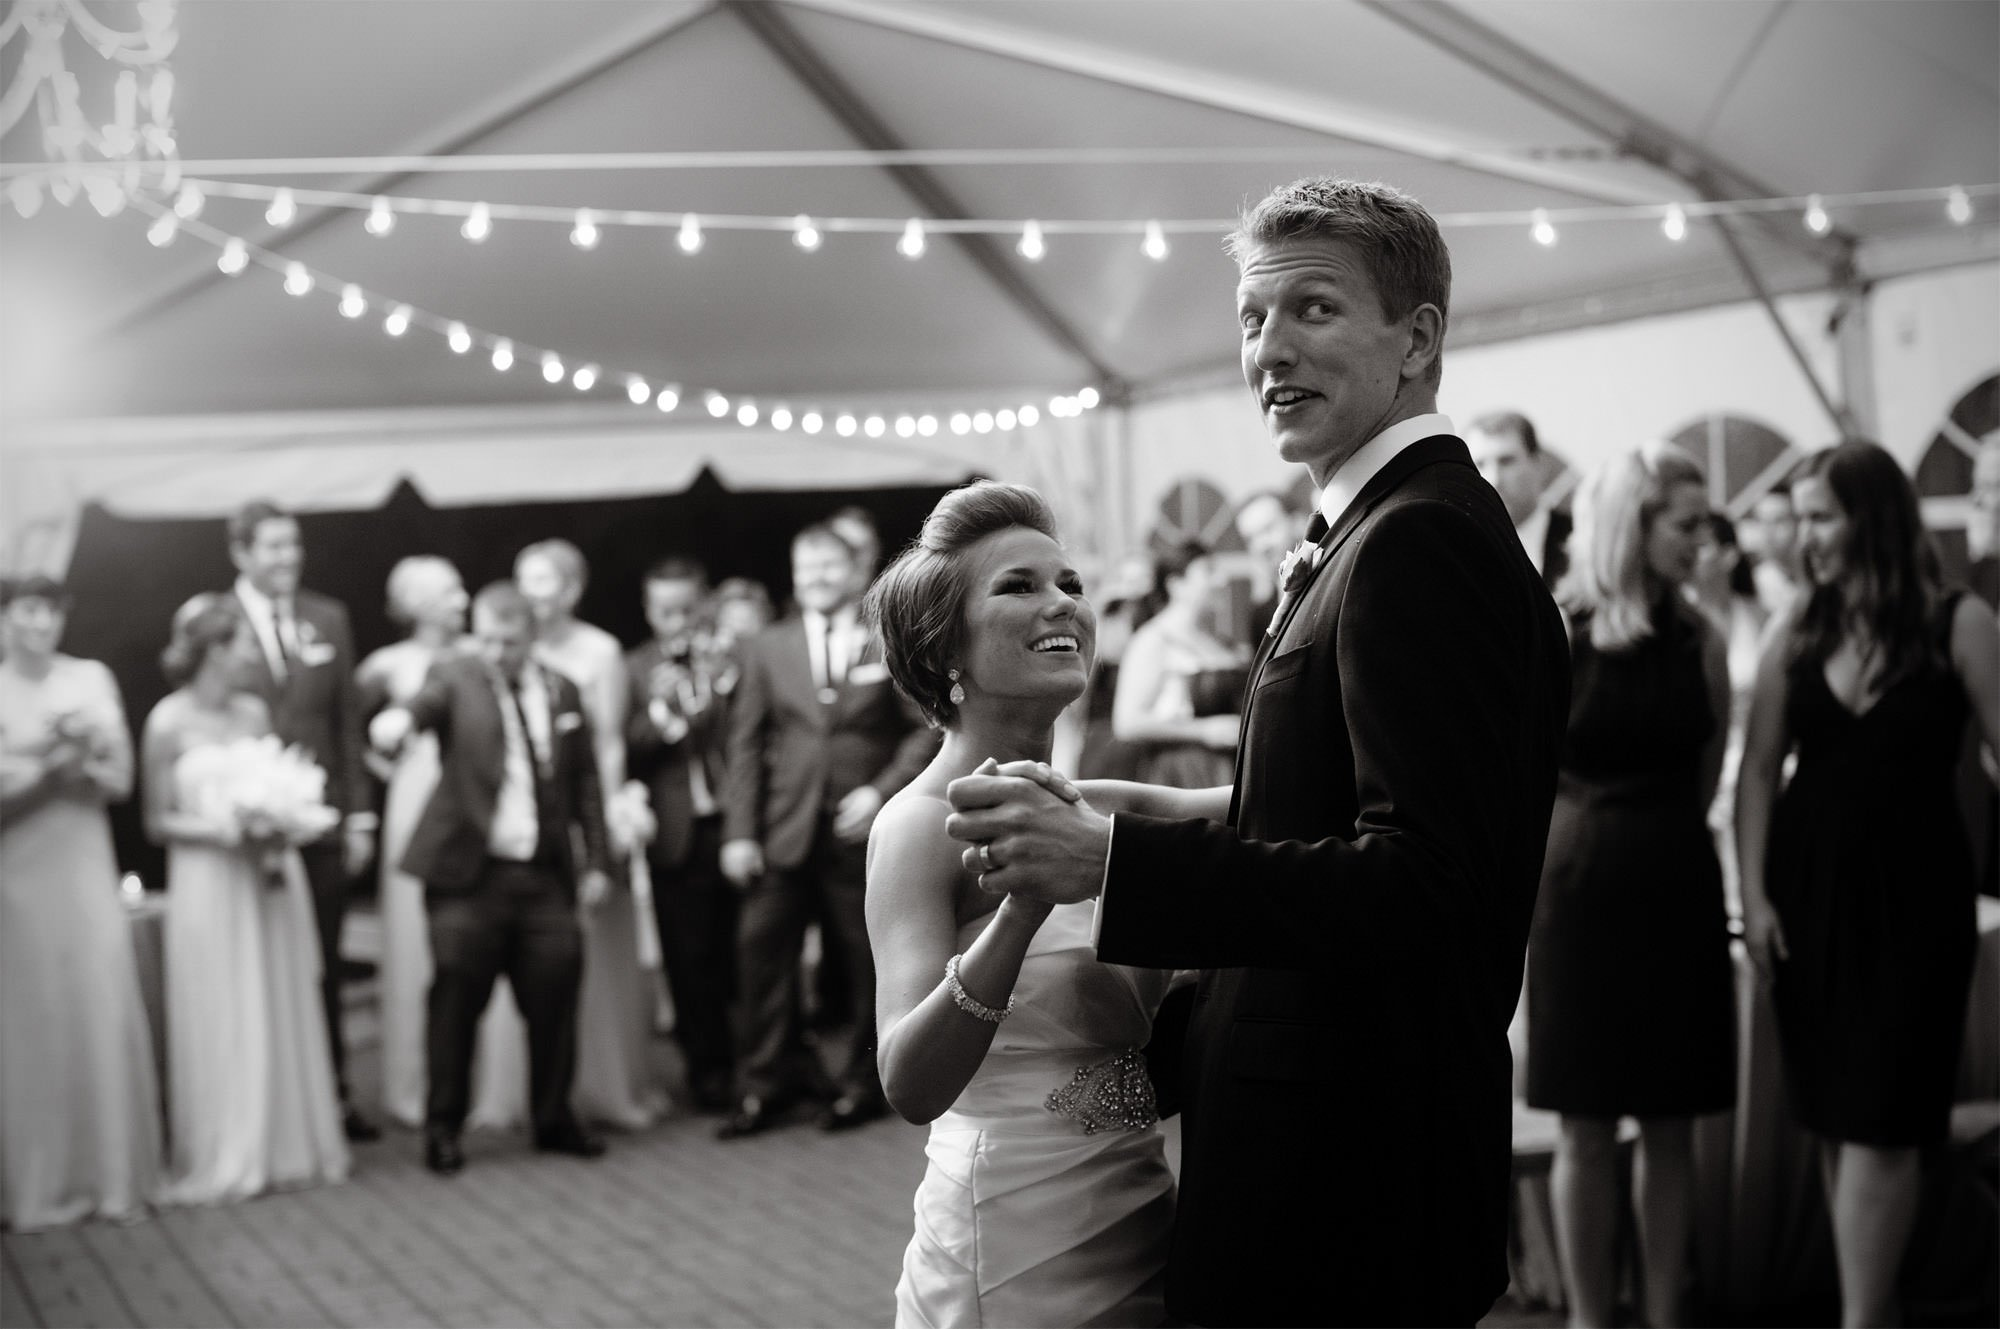 The bride and groom dance during the tented reception of their Oxon Hill Manor wedding in Oxon Hill, MD.